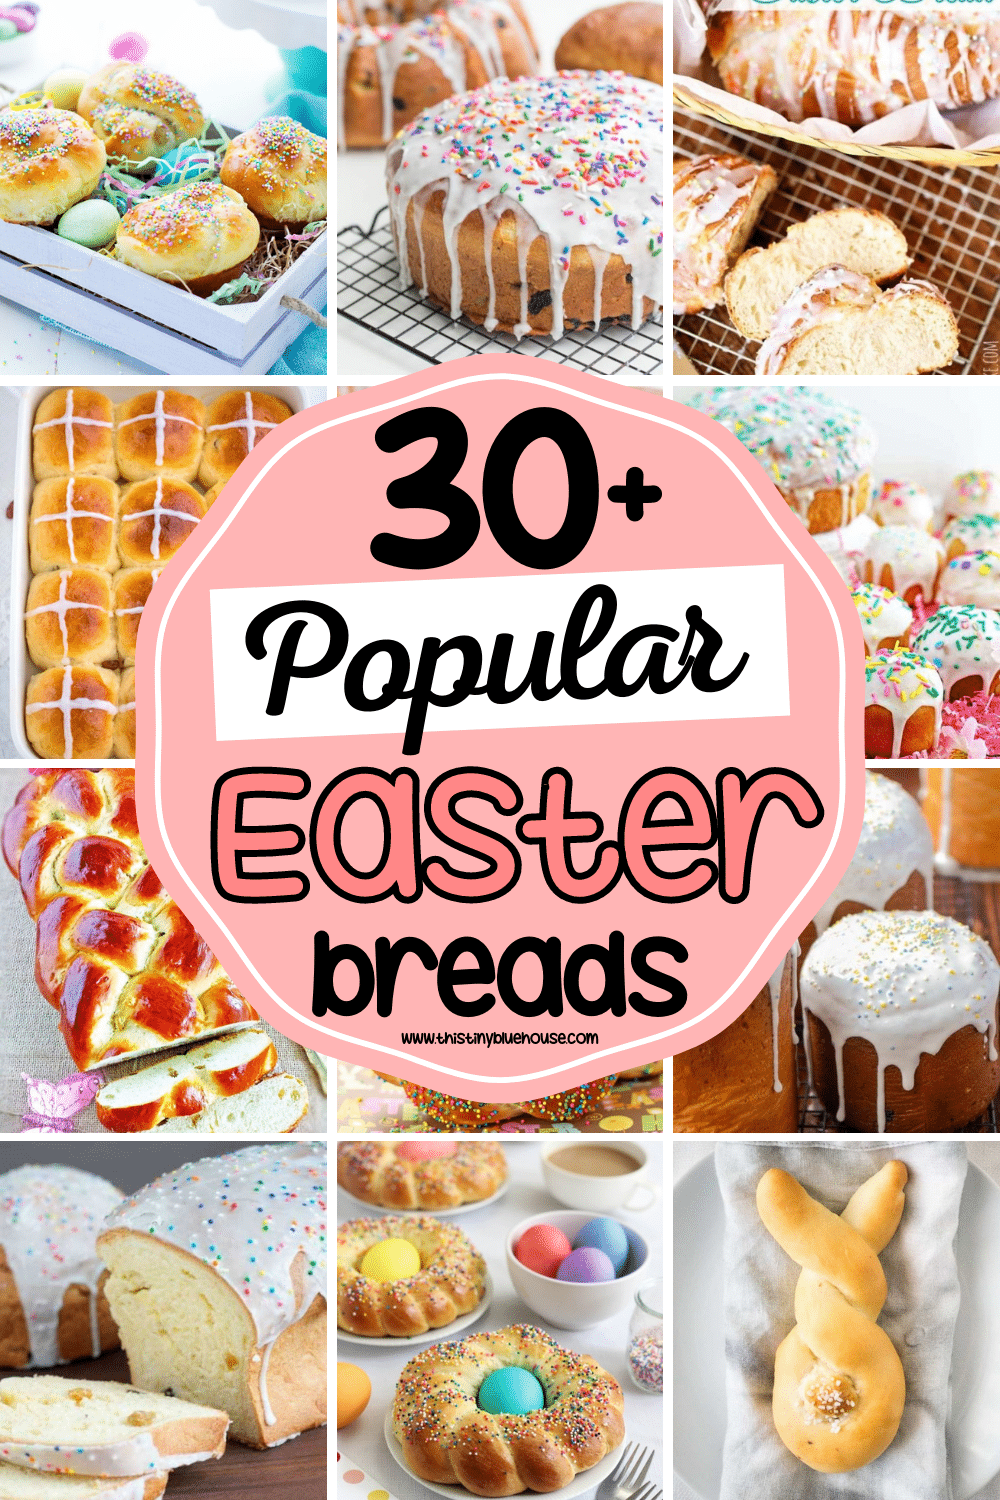 Add one of these best delicious Easter Bread recipes to your family's traditions and make celebrating Easter extra special this year.